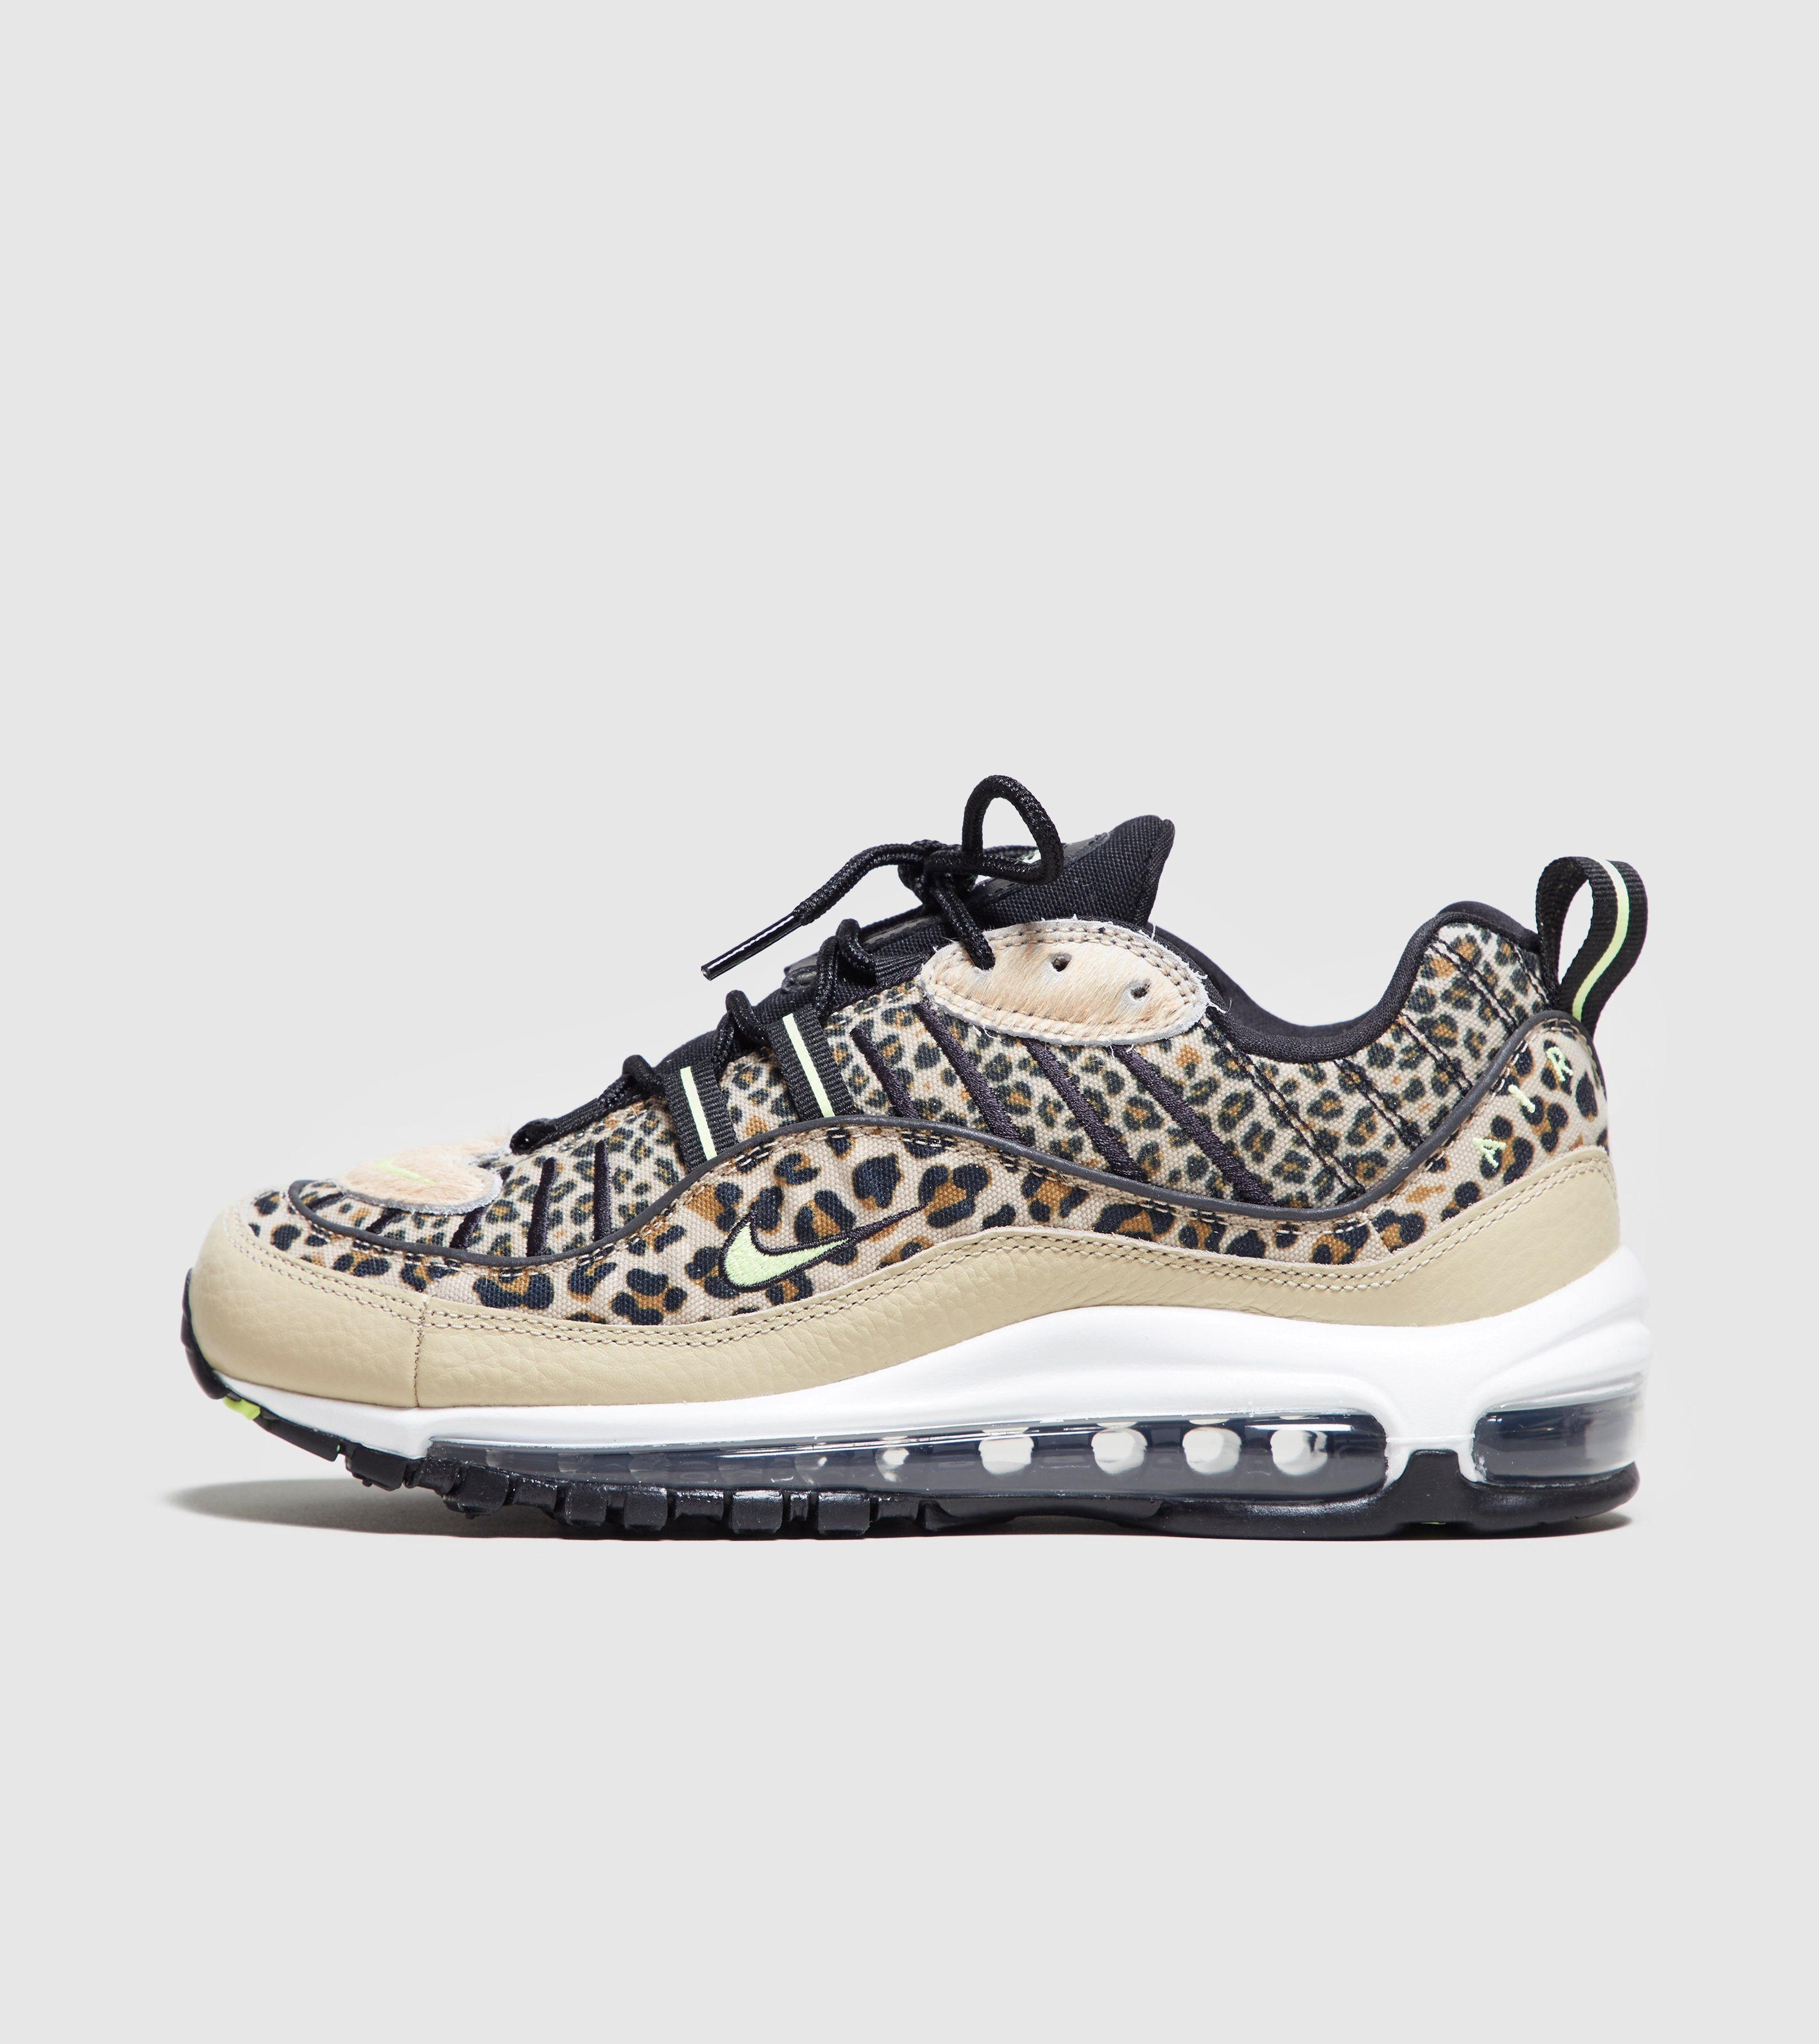 Nike Air Max 98 'Leopard' Frauen